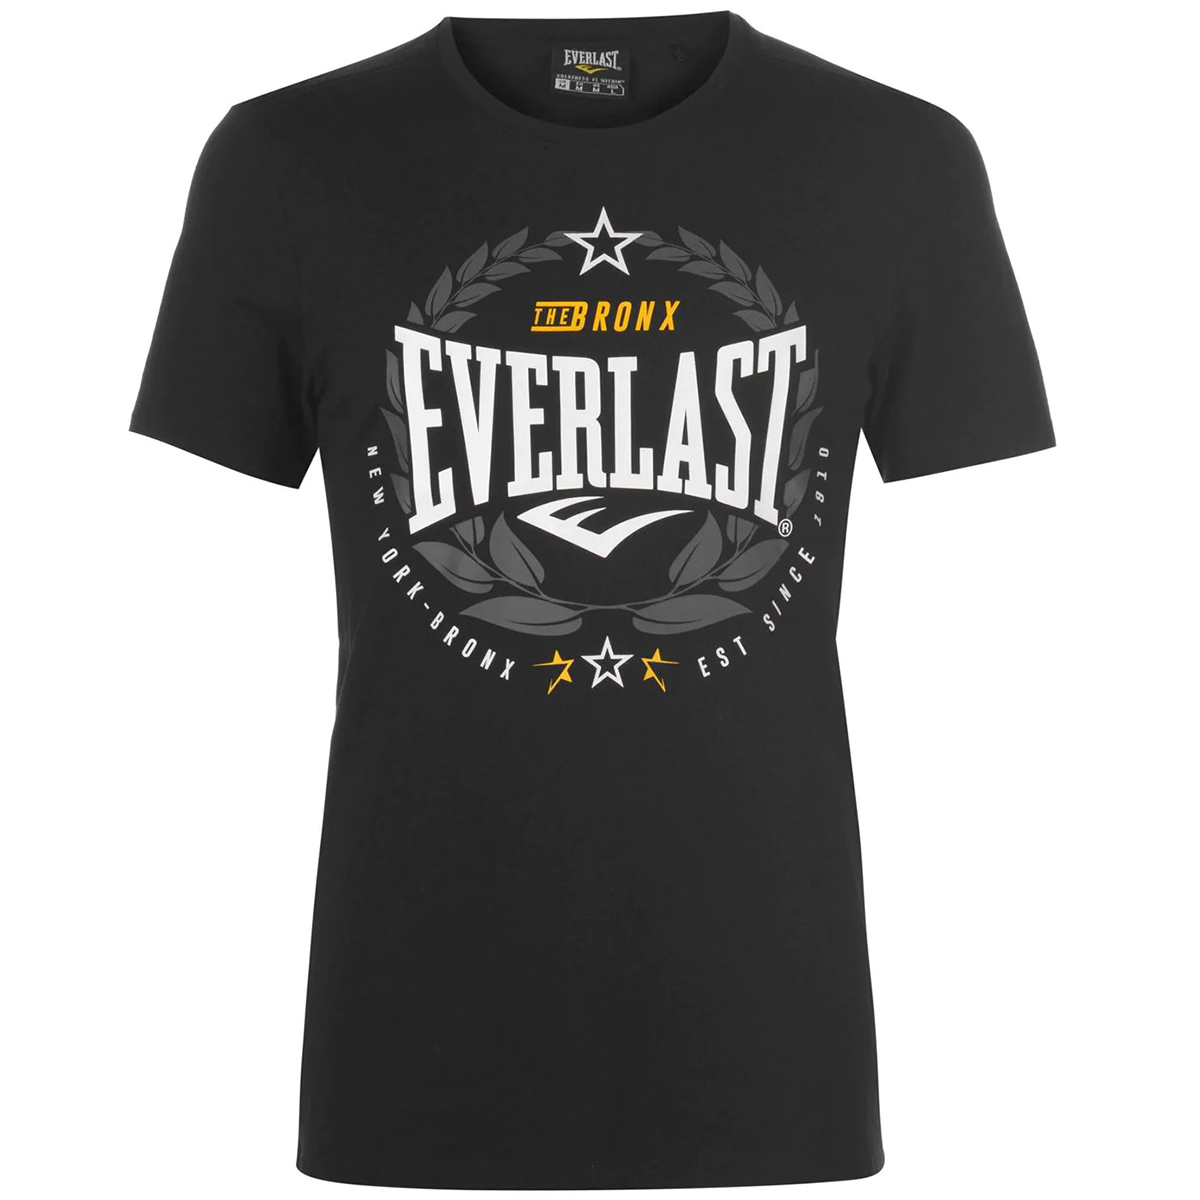 Everlast Men's Laurel Short-Sleeve Tee - Black, M